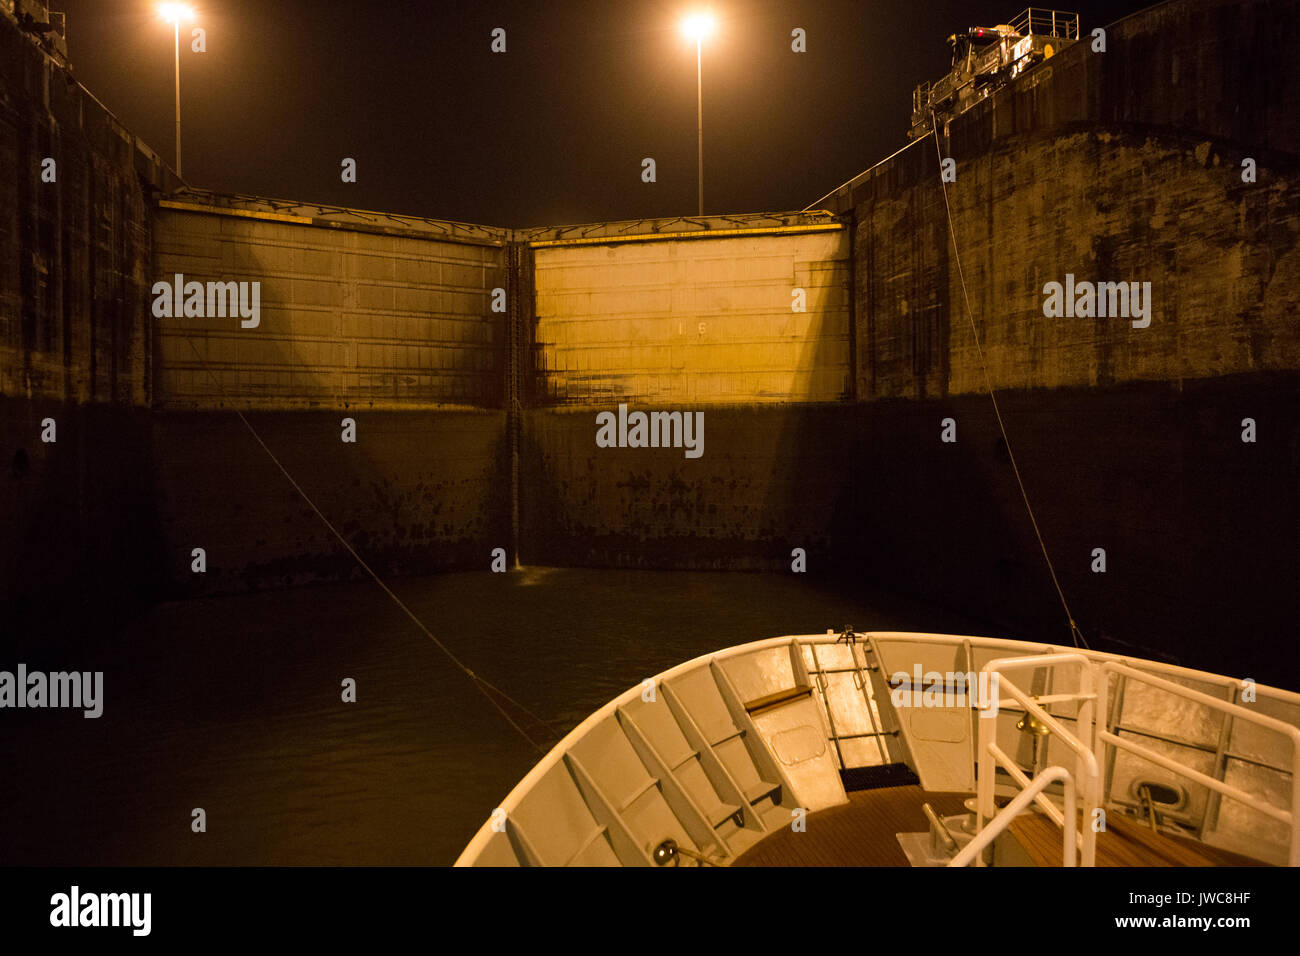 A cruise boat is tied to guiding train engines as the vessel enters Gatun Locks from the Atlantic entrance of the Panama Canal. - Stock Image